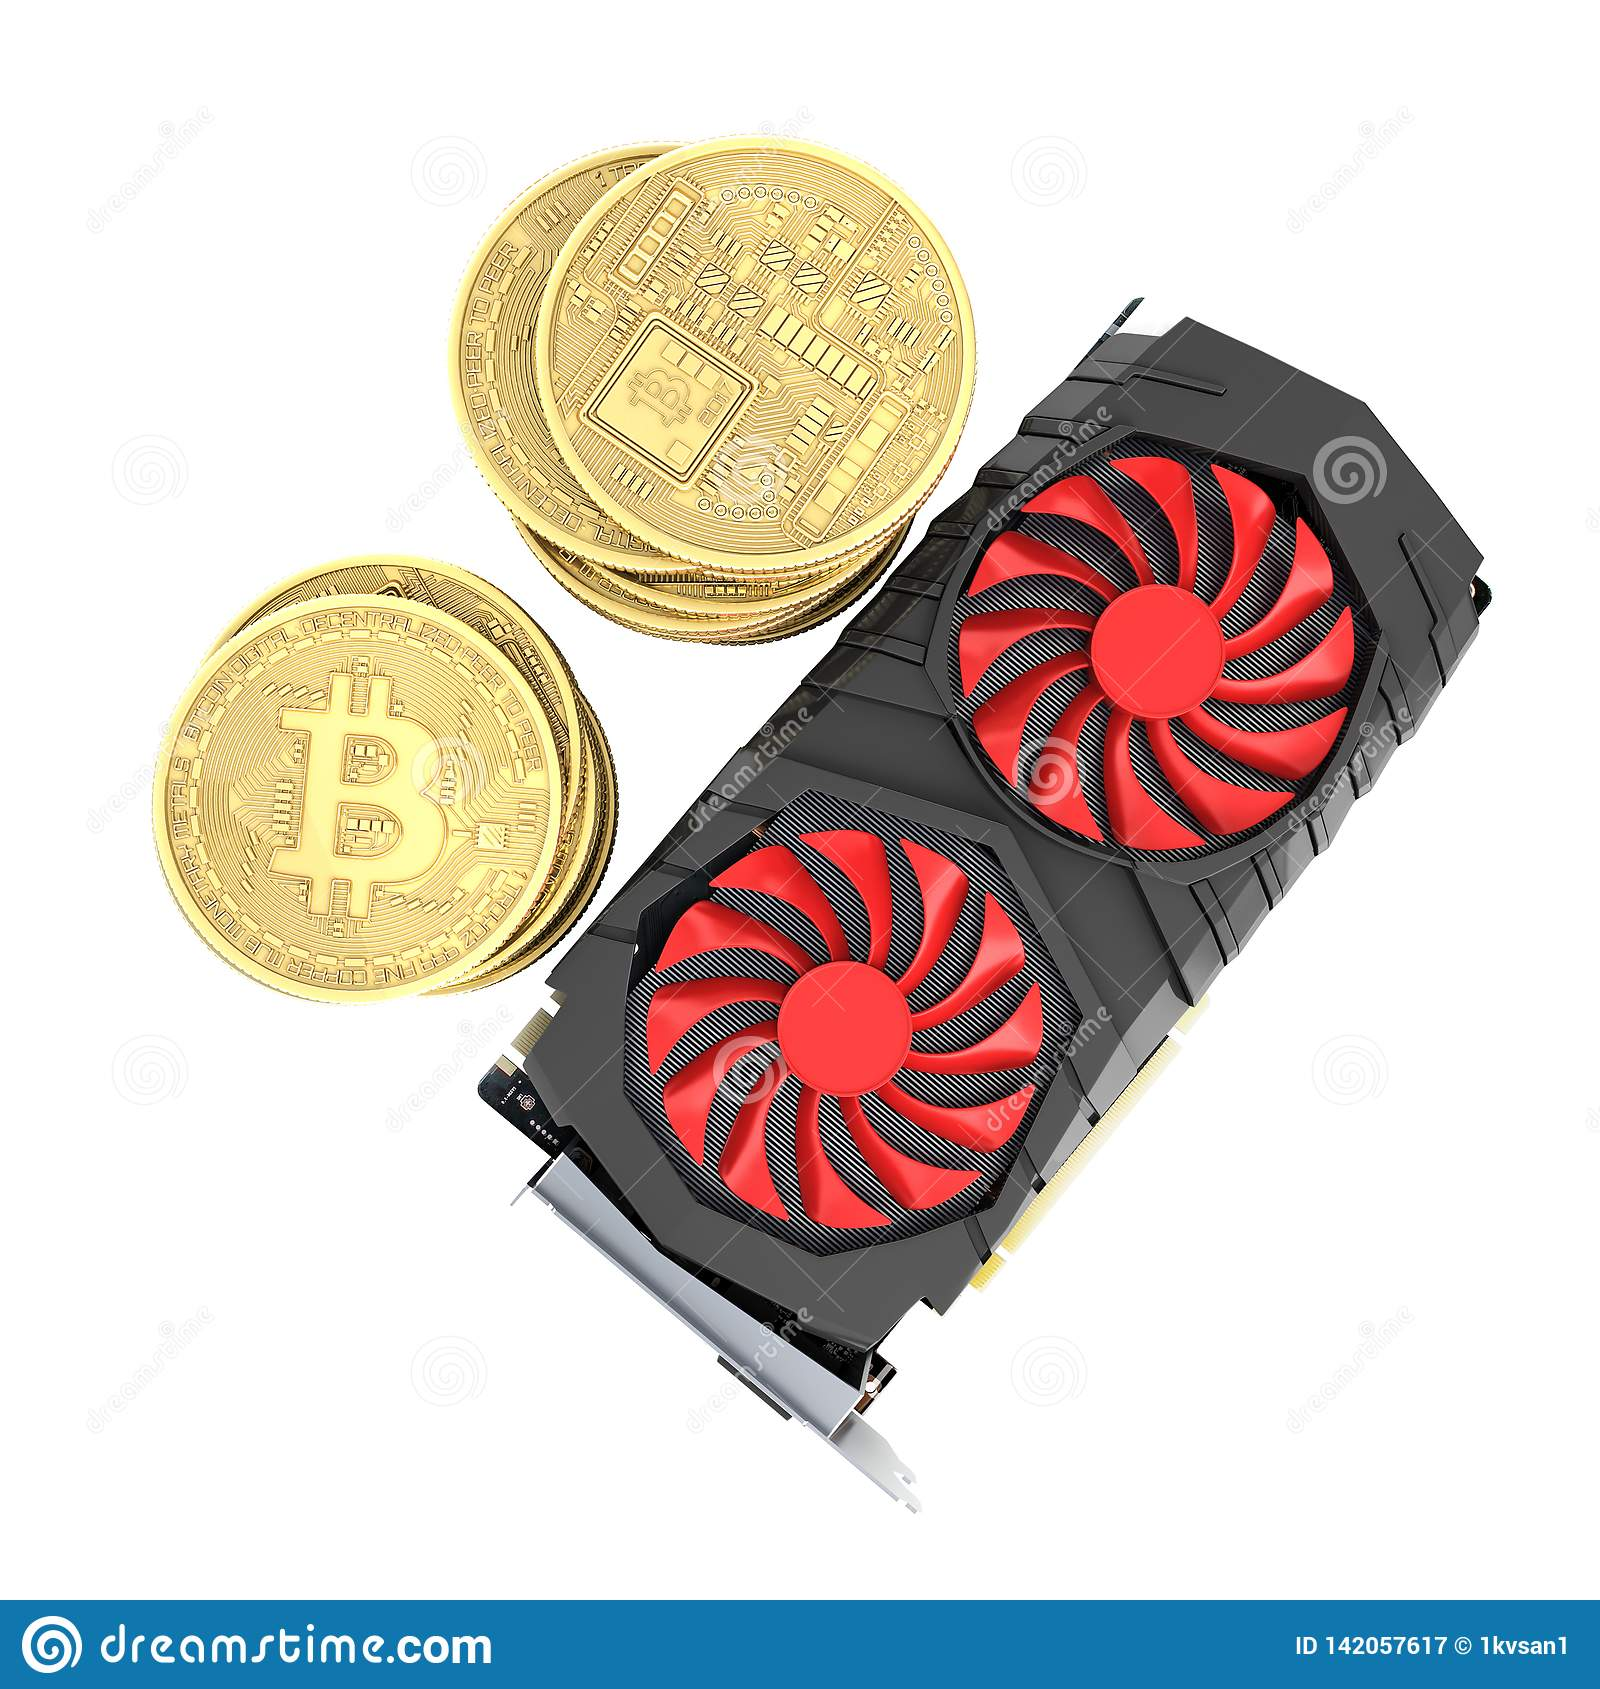 how to earn cryptocurrency without mining